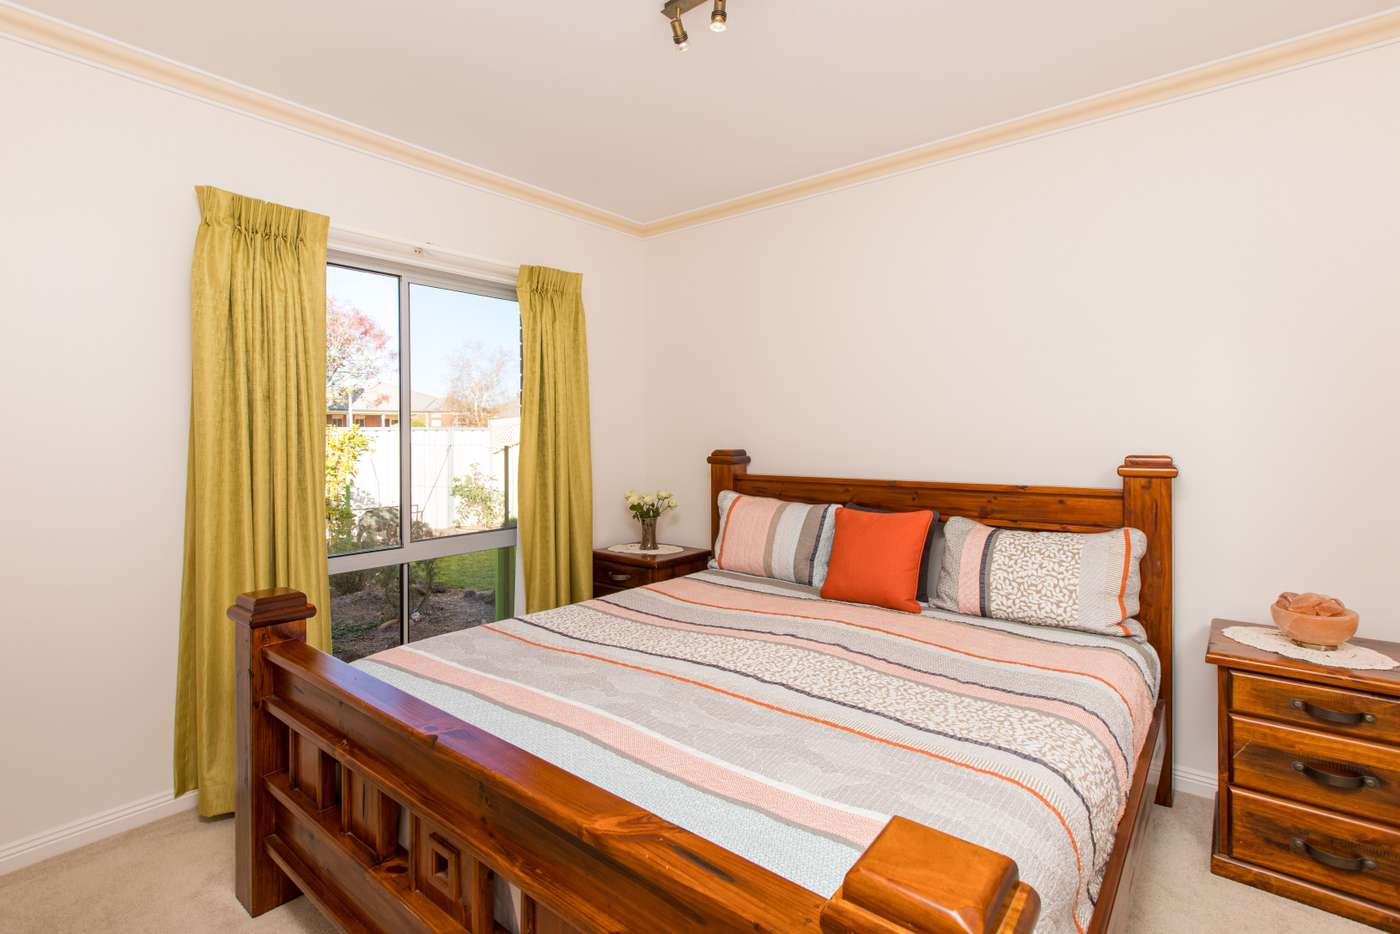 Fifth view of Homely house listing, 1 Golden Ash Drive, Mildura VIC 3500